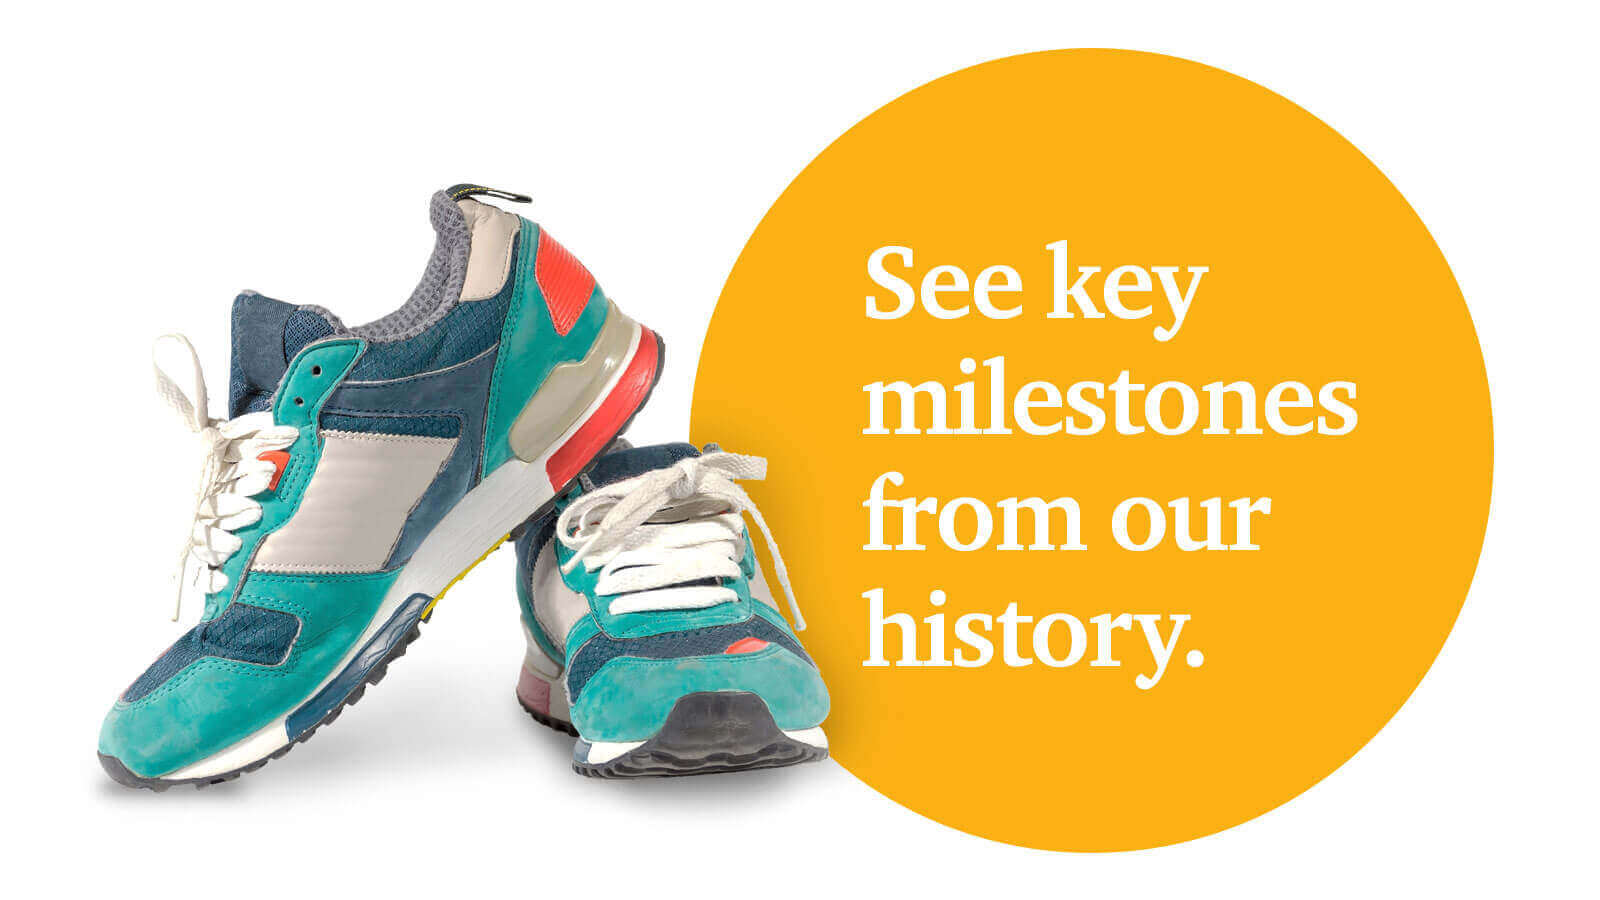 See key milestones from our history